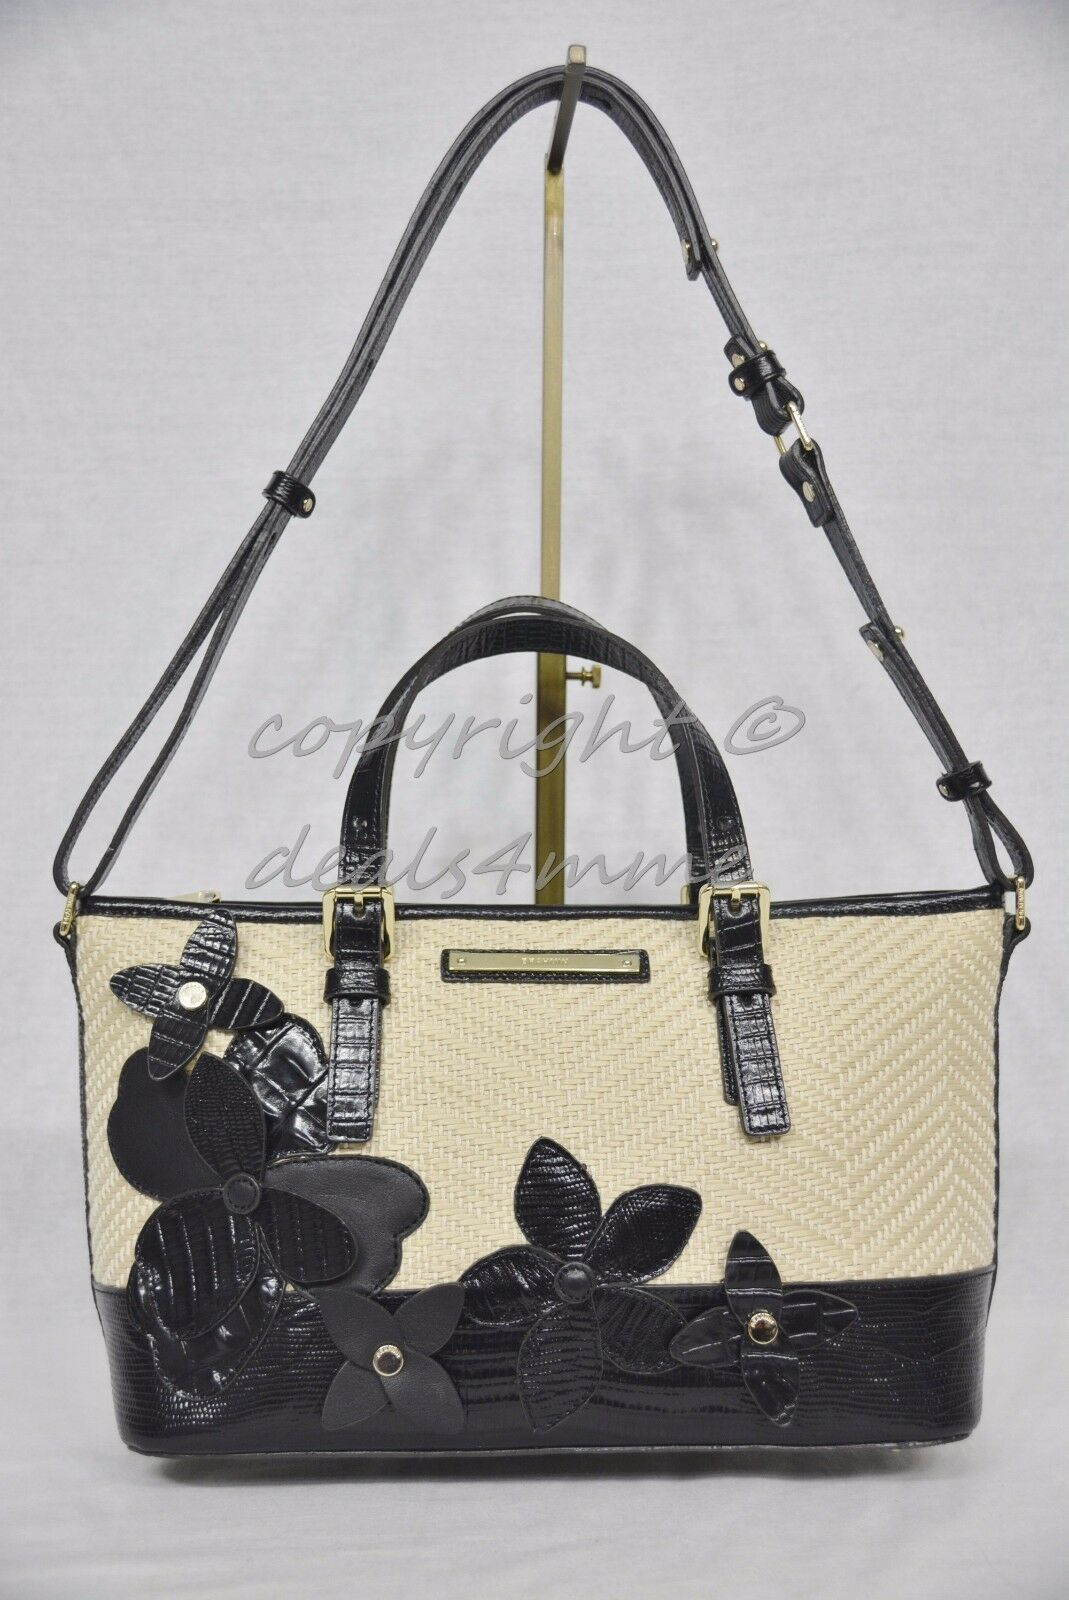 Primary image for NWT Brahmin Mini Asher Satchel/Shoulder Bag in Black Miramonte-Cream with Black